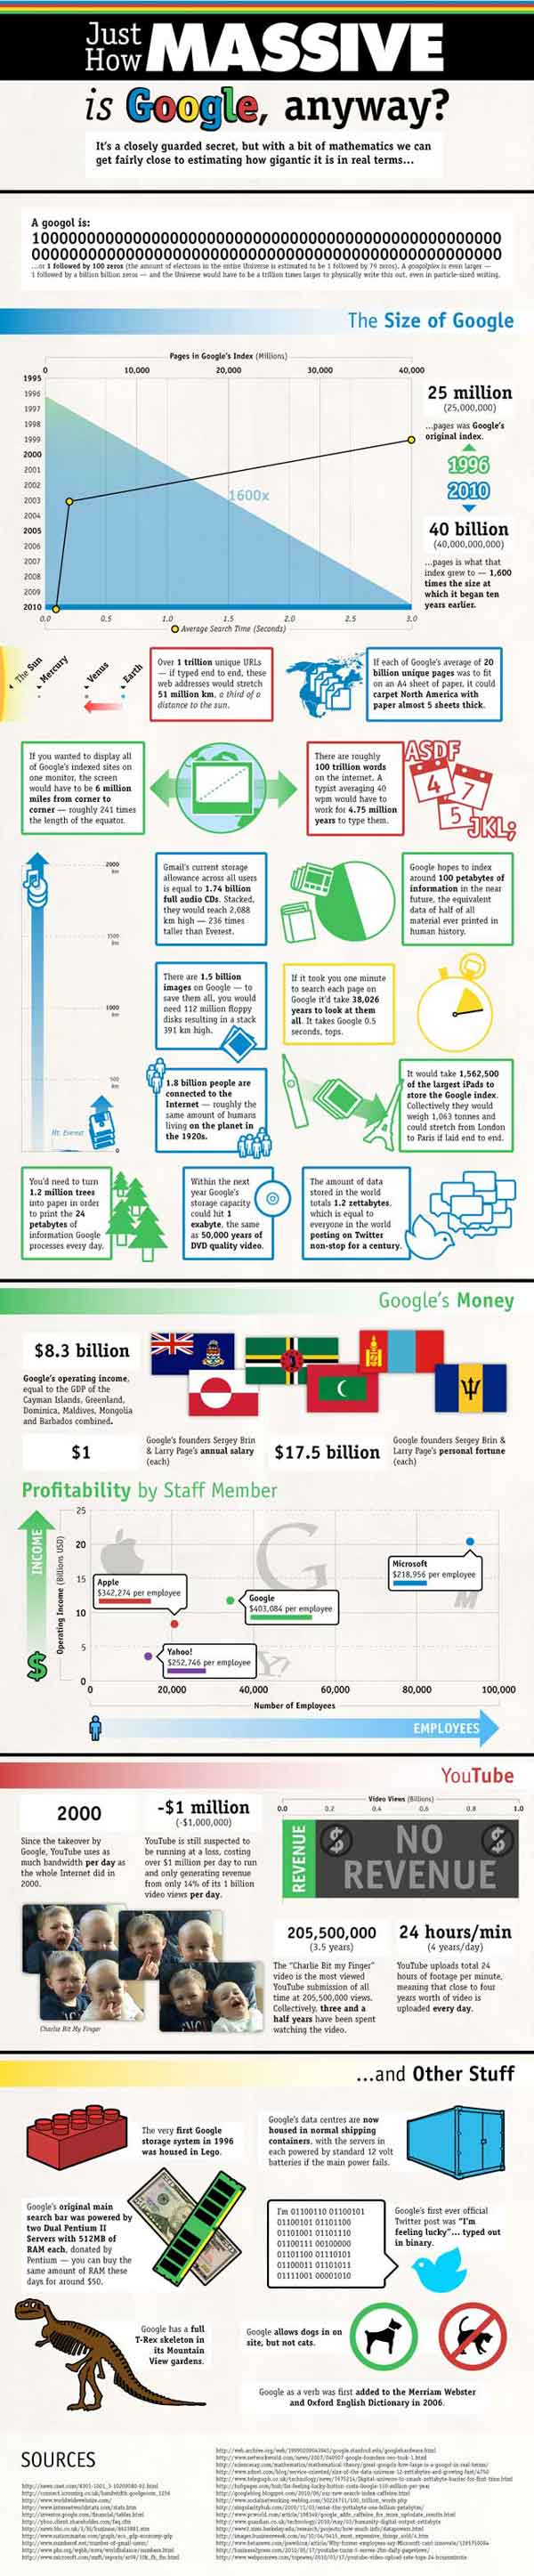 Google by the numbers - from computerschool.org website